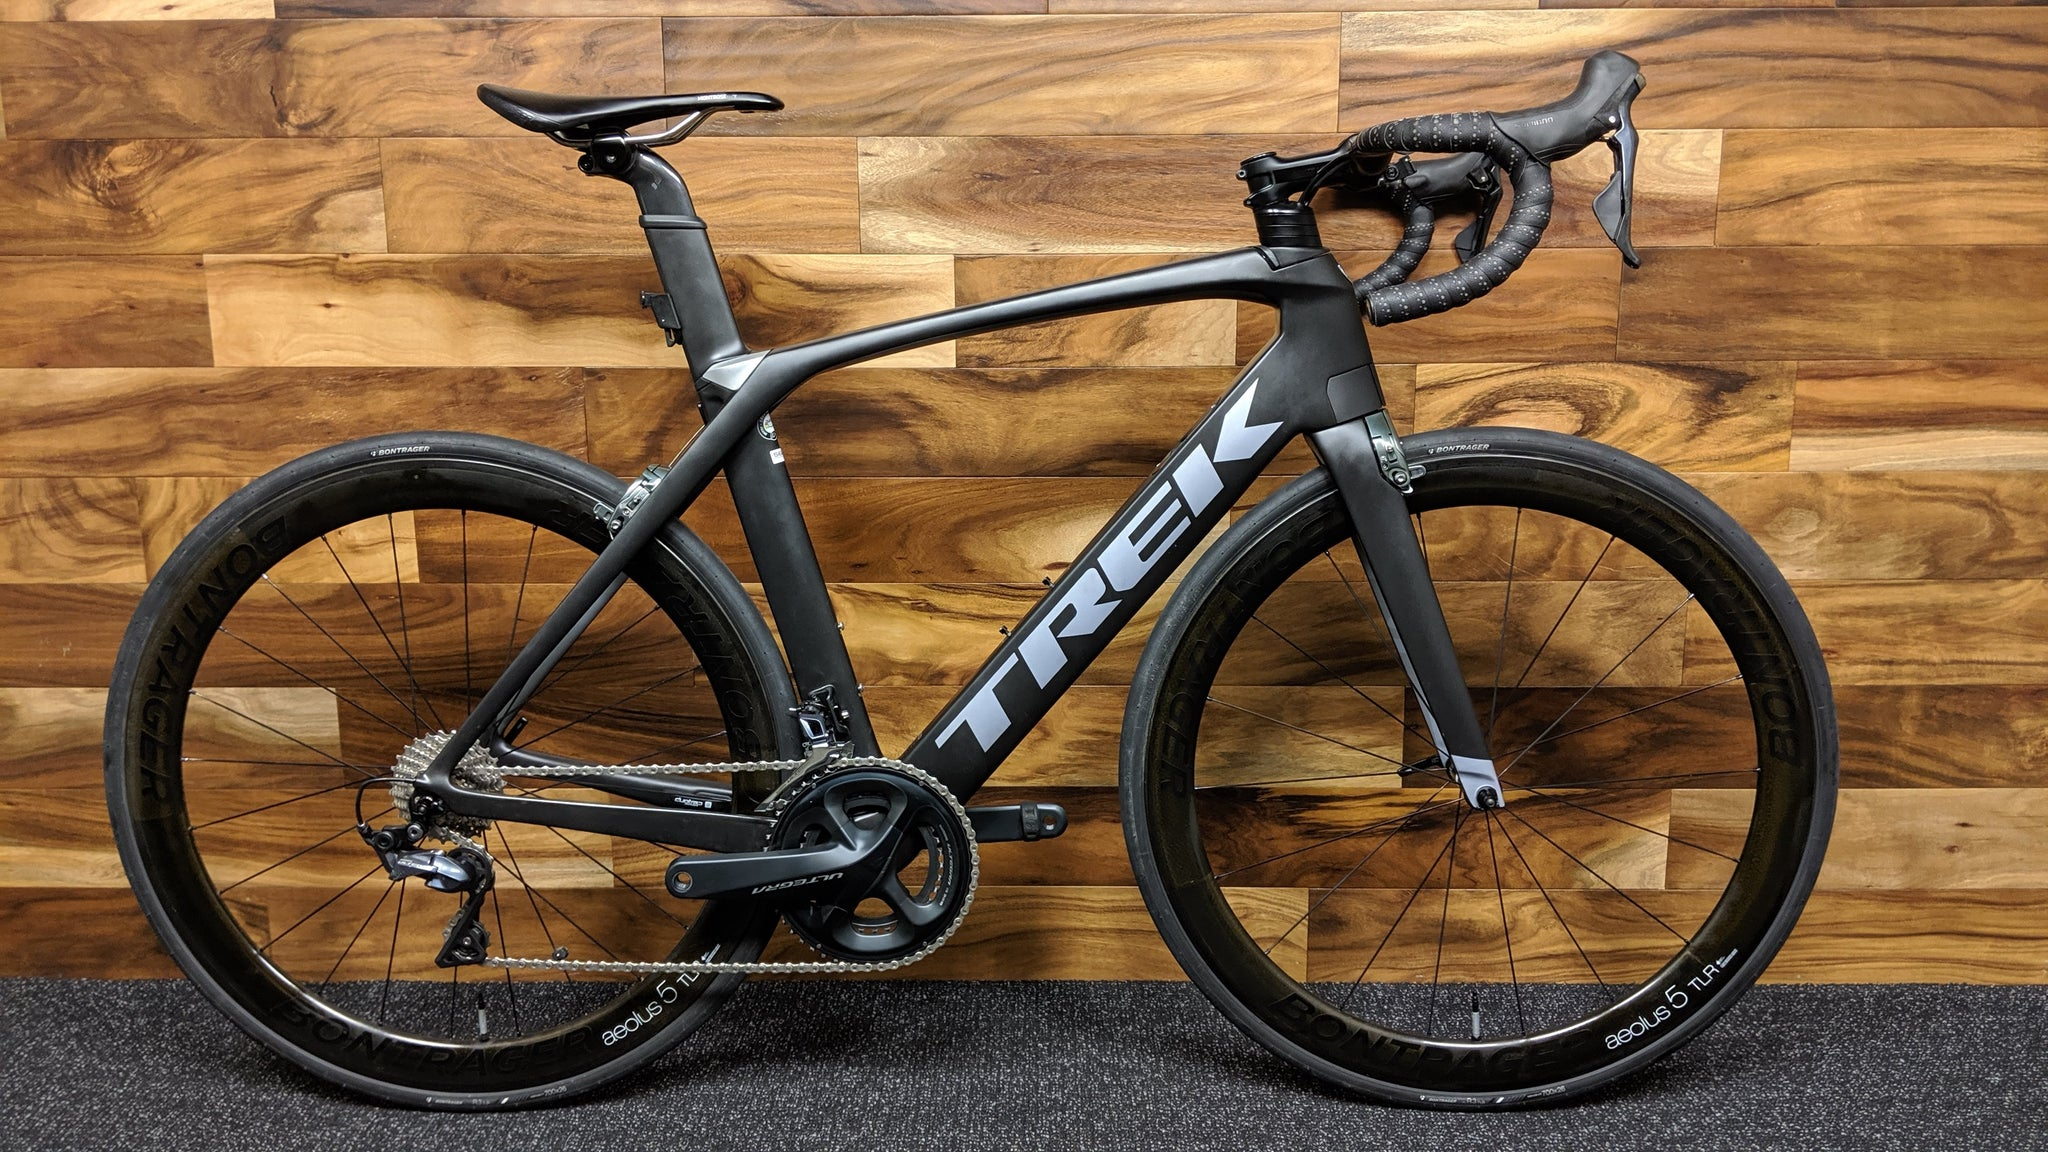 2018 TREK MADONE 9.0 CARBON WHEELS 56cm